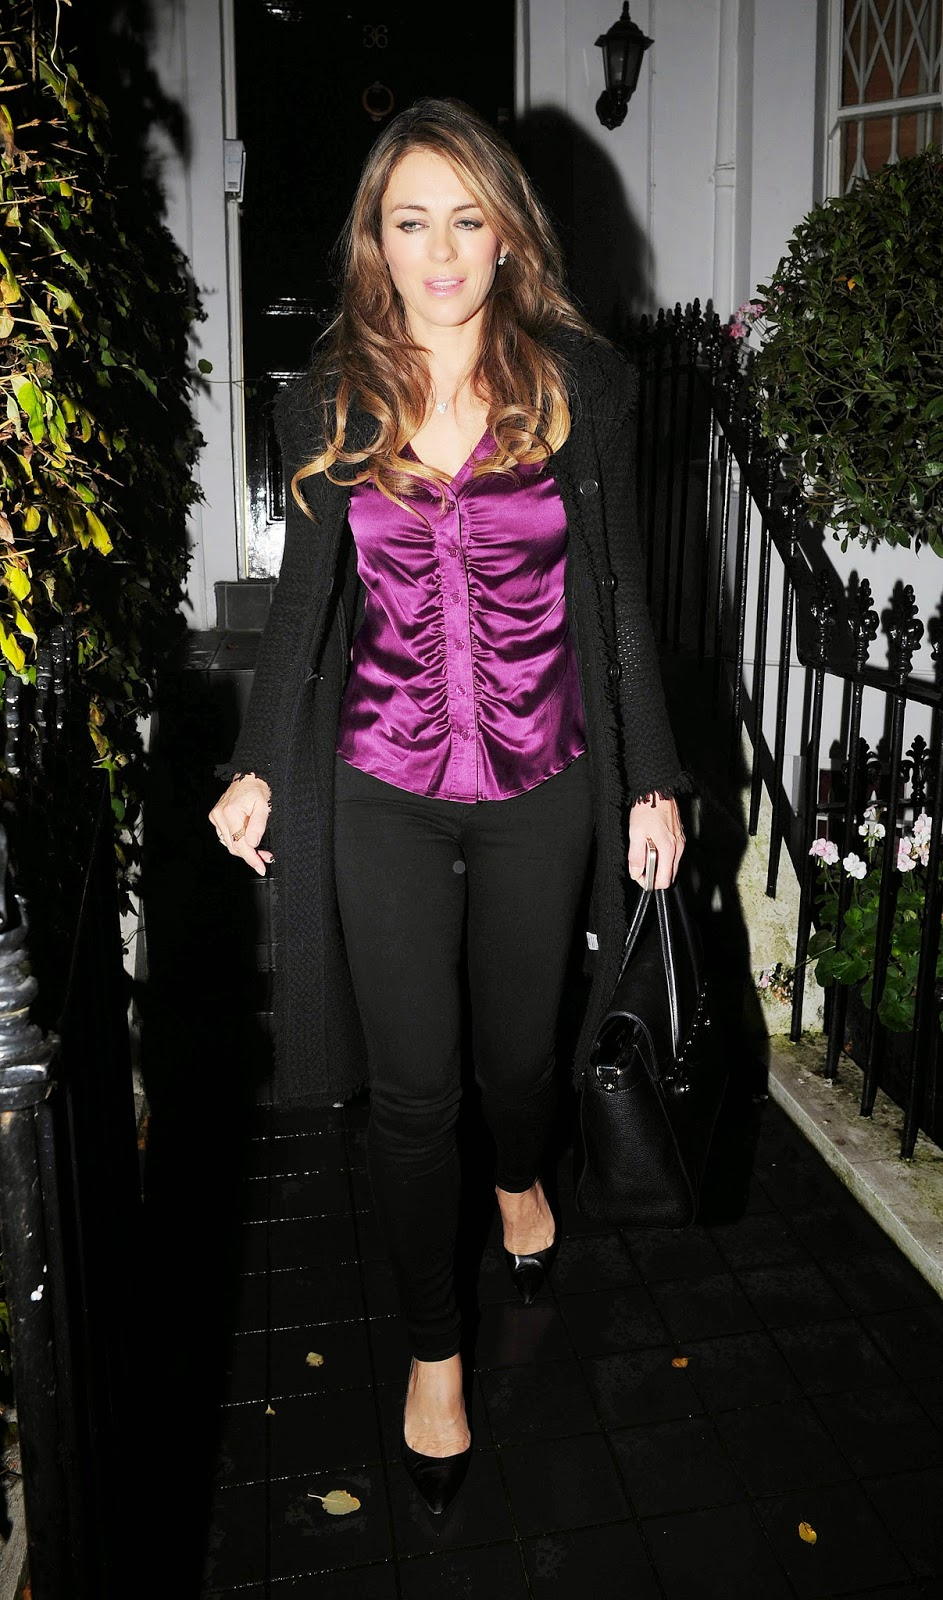 Recollect Elizabeth hurley upskirt pity, that